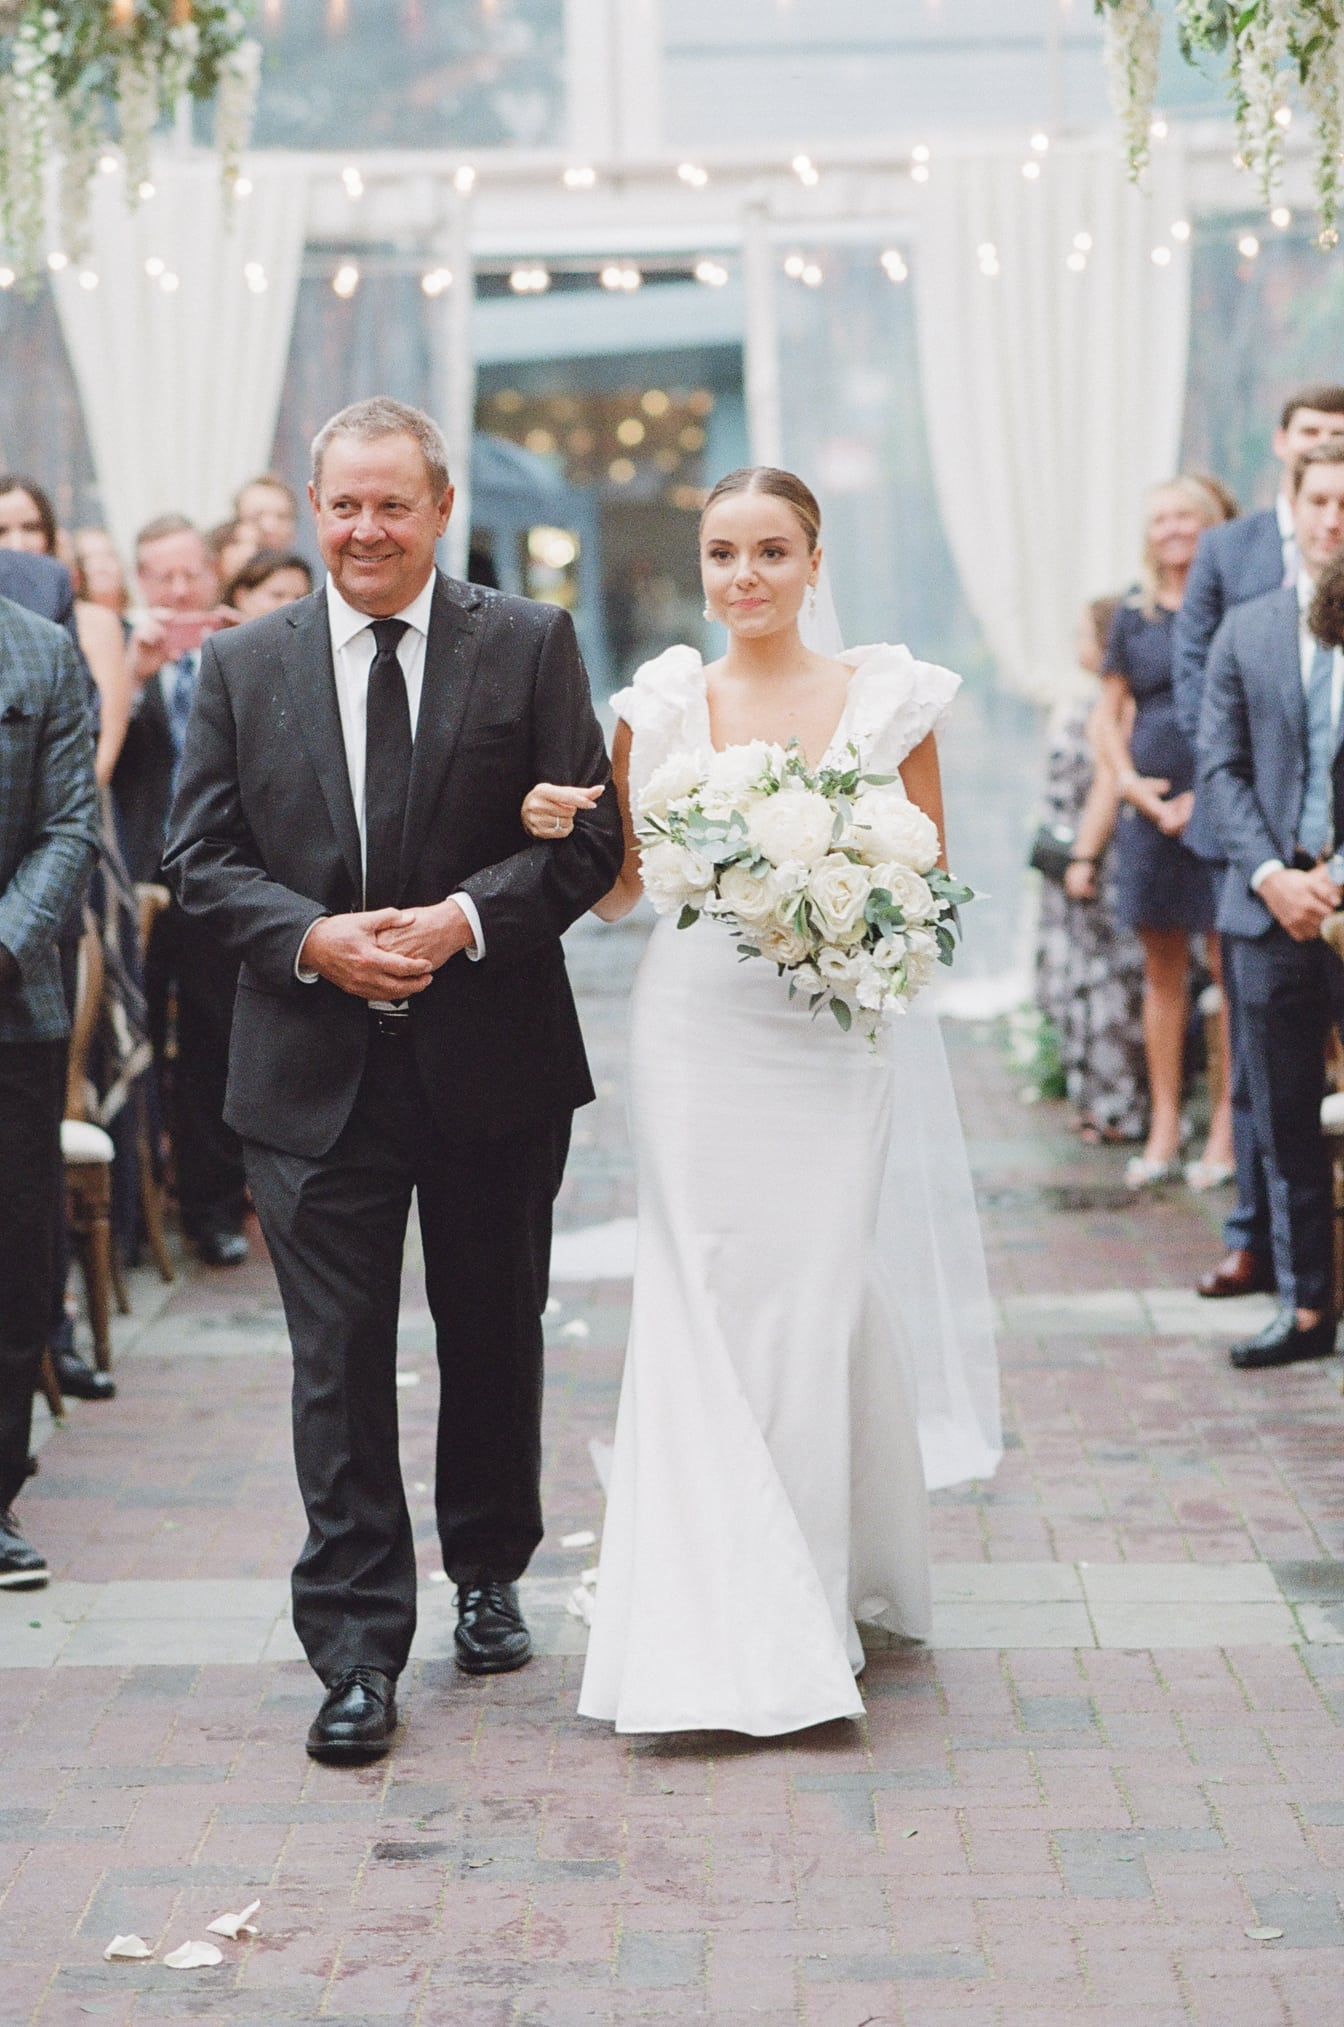 Bride and her father walking down the aisle at Chicago Illuminating Company